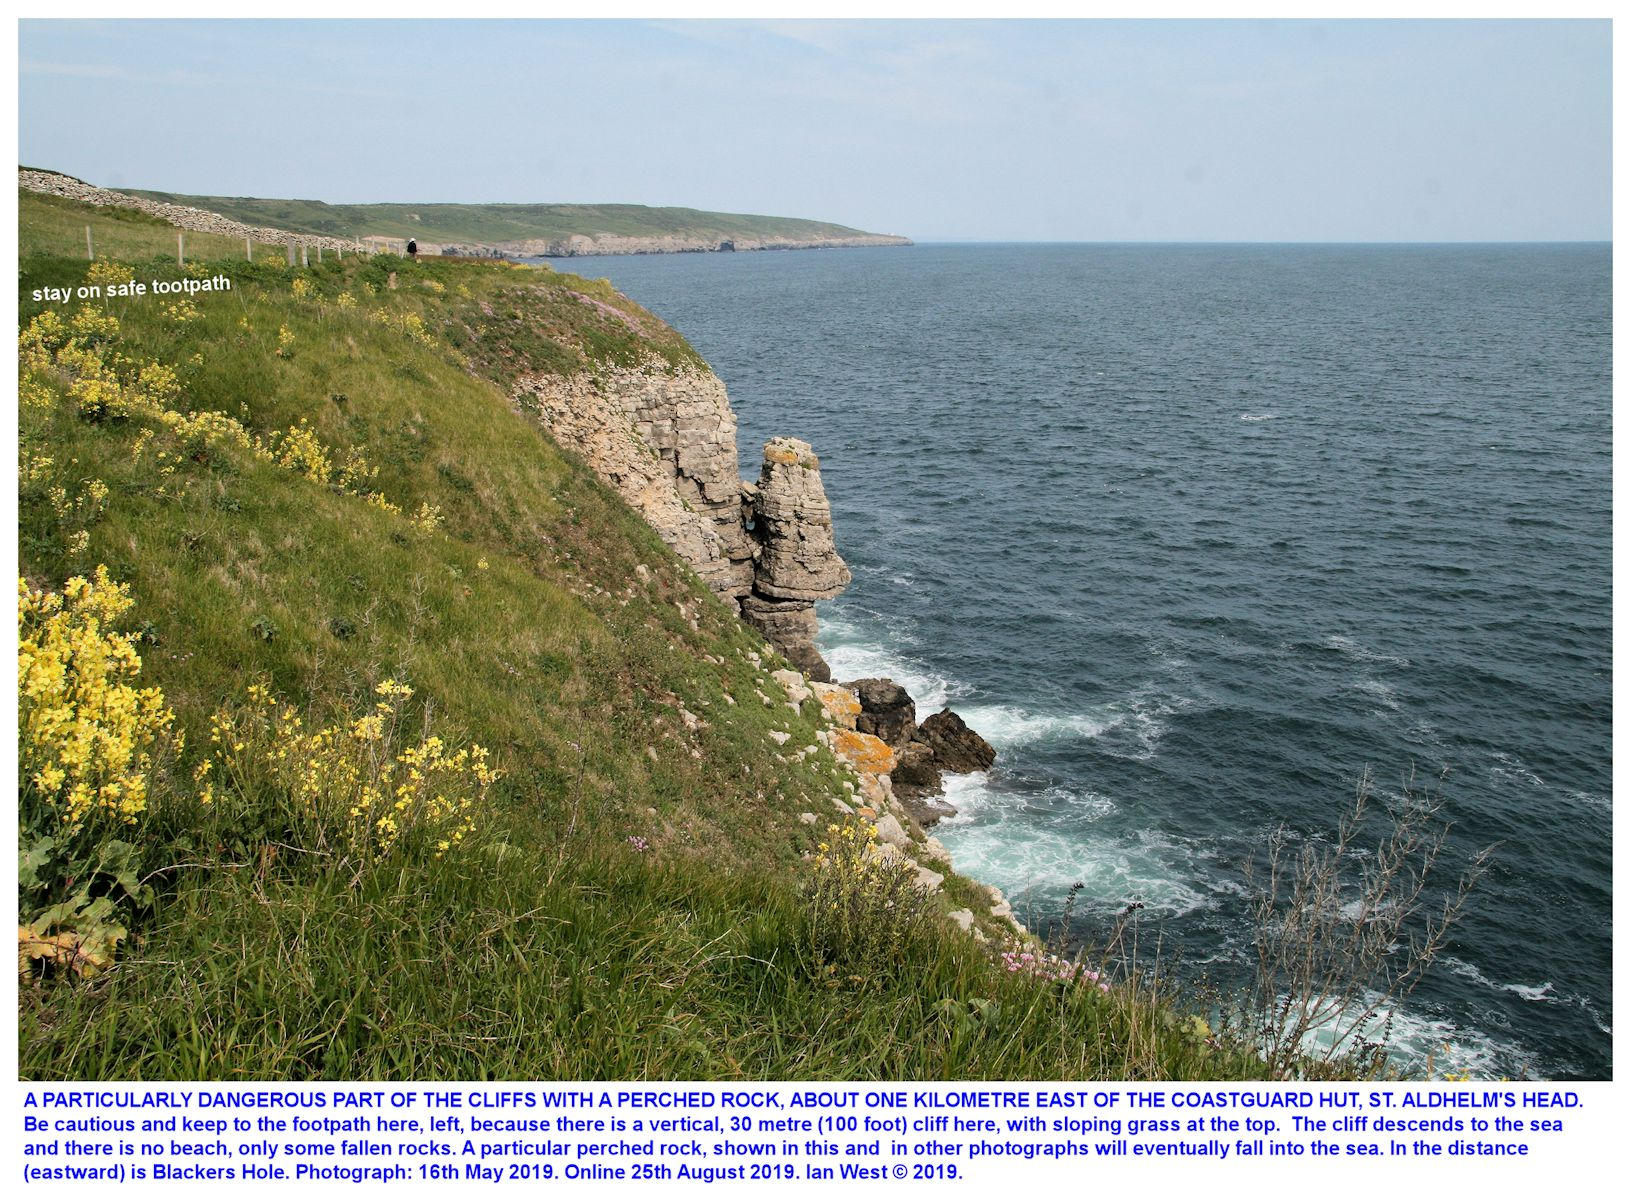 An unstable rock, an incipient topple of some Portland Stone, east of St. Aldhelm's Head as seen in May 2019, online Aug 2019, Ian West